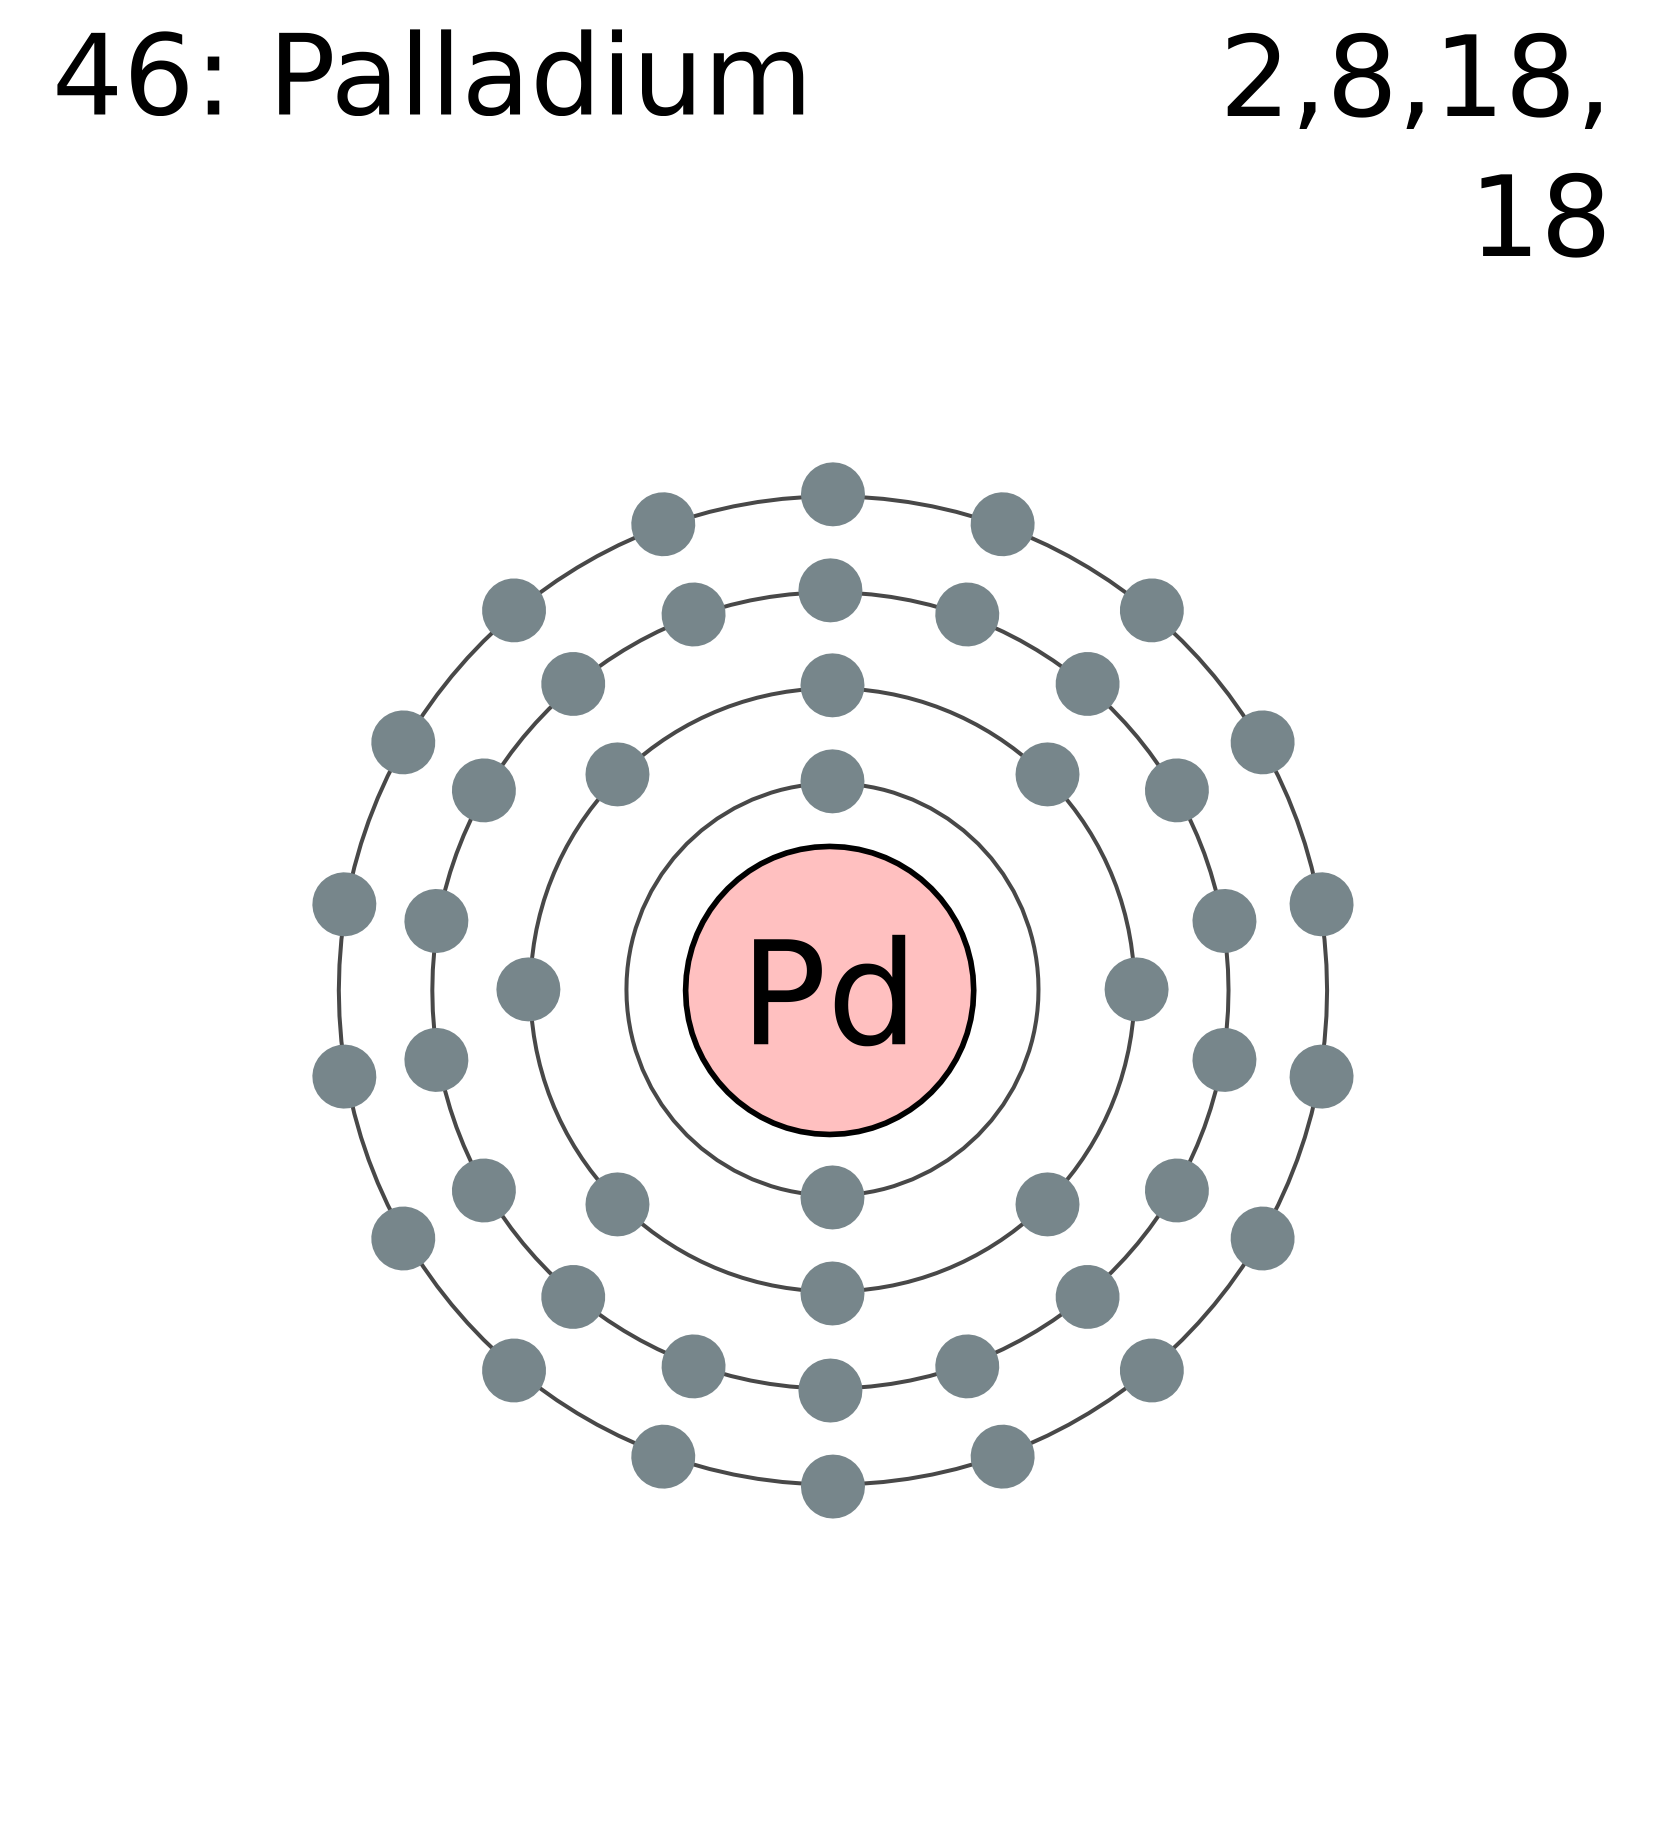 Define electron dot diagram images diagram design ideas chemical symbol palladium buffalofix19 palladium definition and meaning collins english dictionary pooptronica images pooptronica Gallery